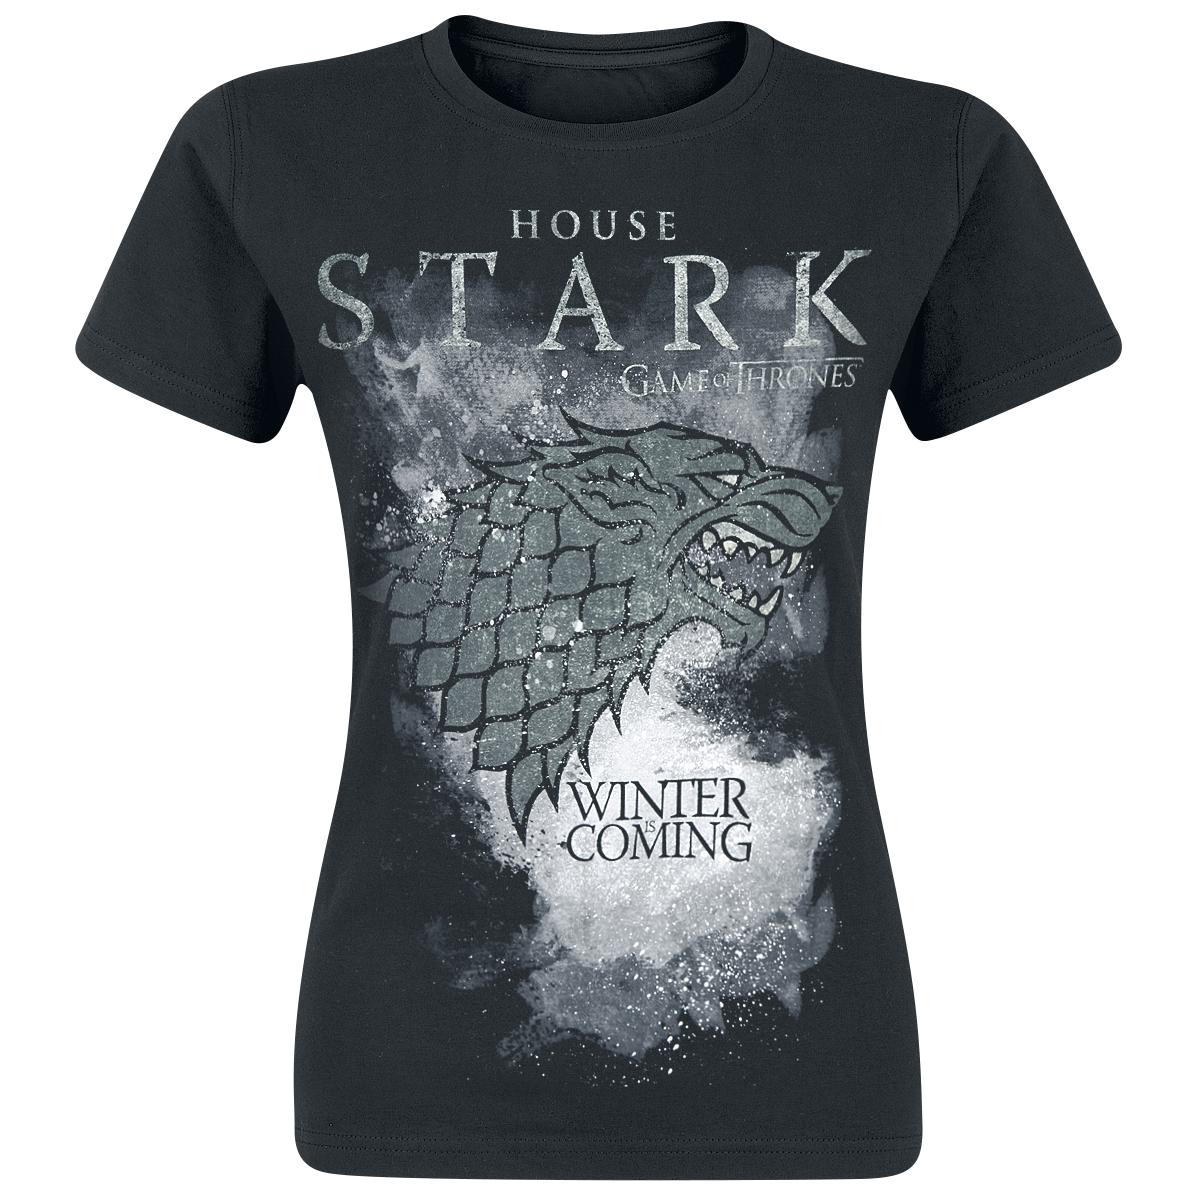 house-stark-t-shirt-design-tee